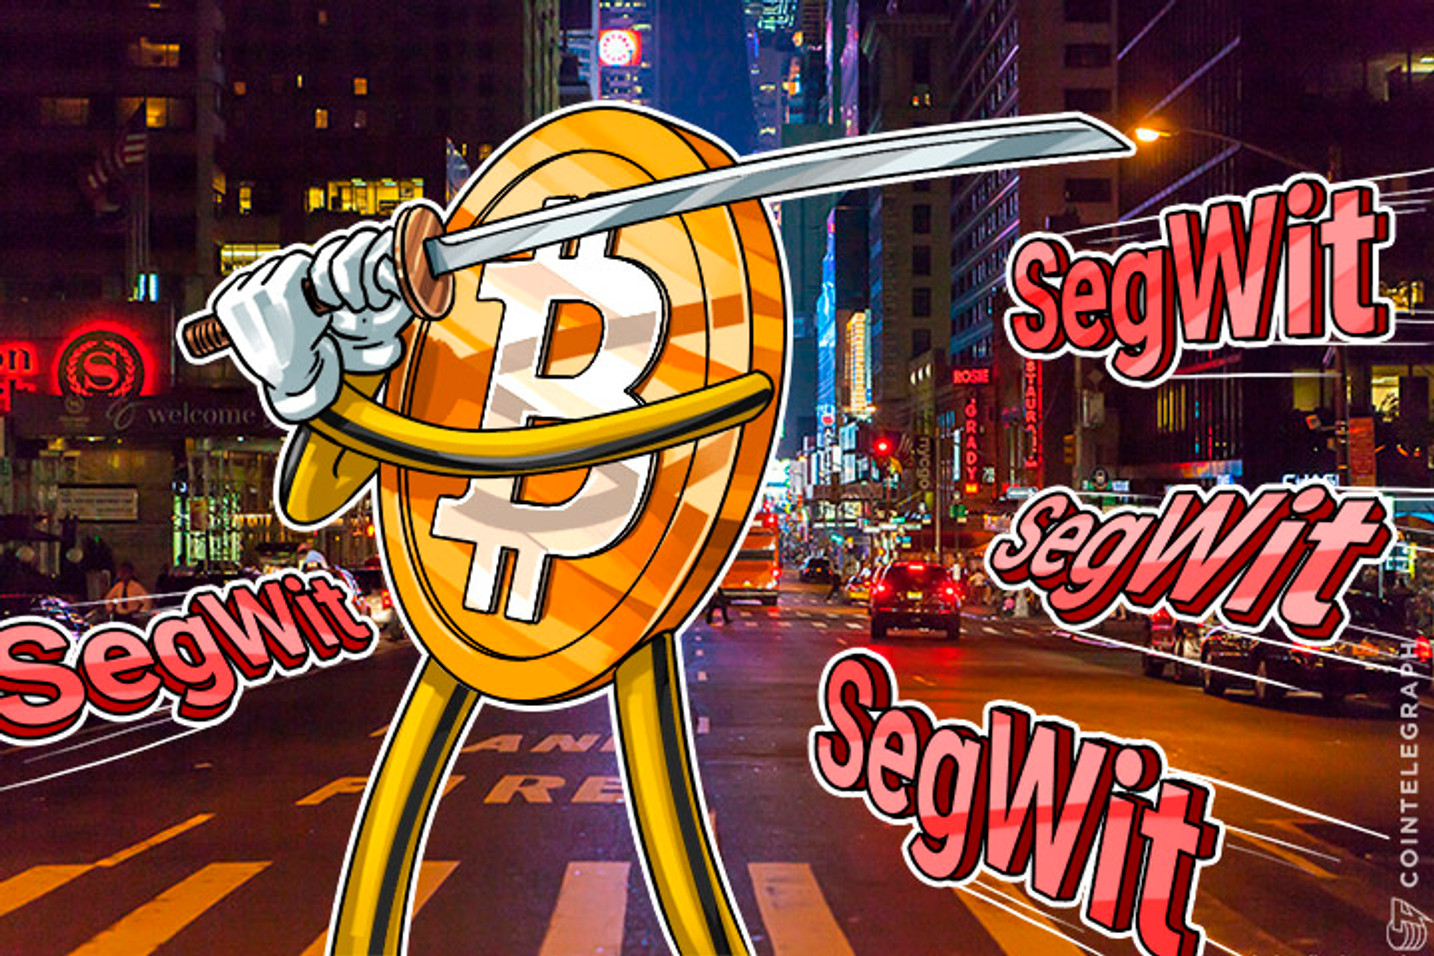 Neither SegWit Nor Bitcoin Unlimited Can Solve Bitcoin's Scalability Problems: Experts